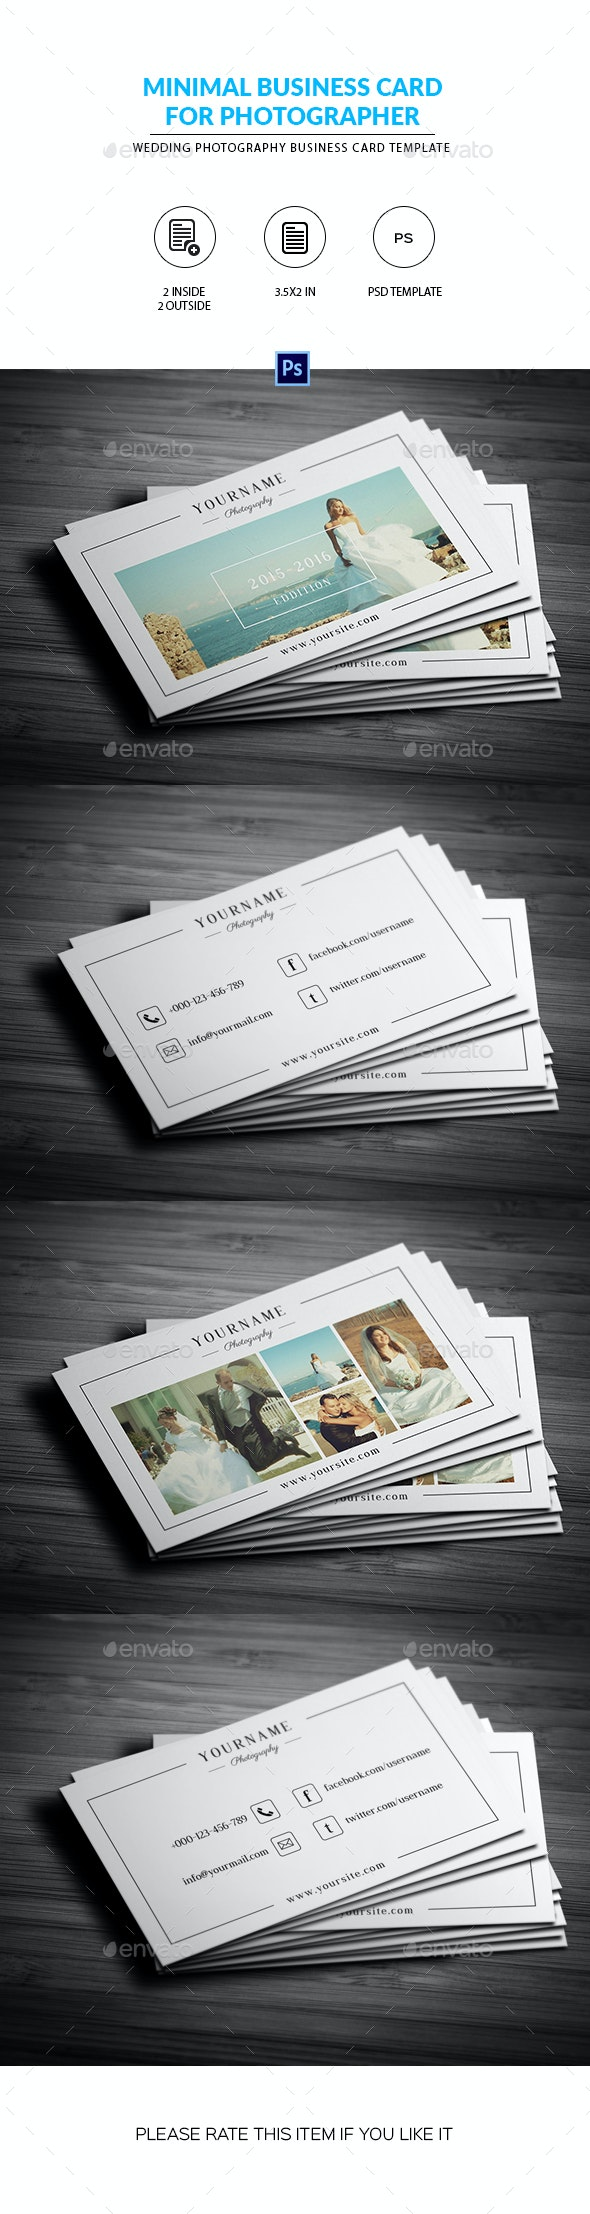 Minimal Wedding Photography Business Card - Corporate Business Cards